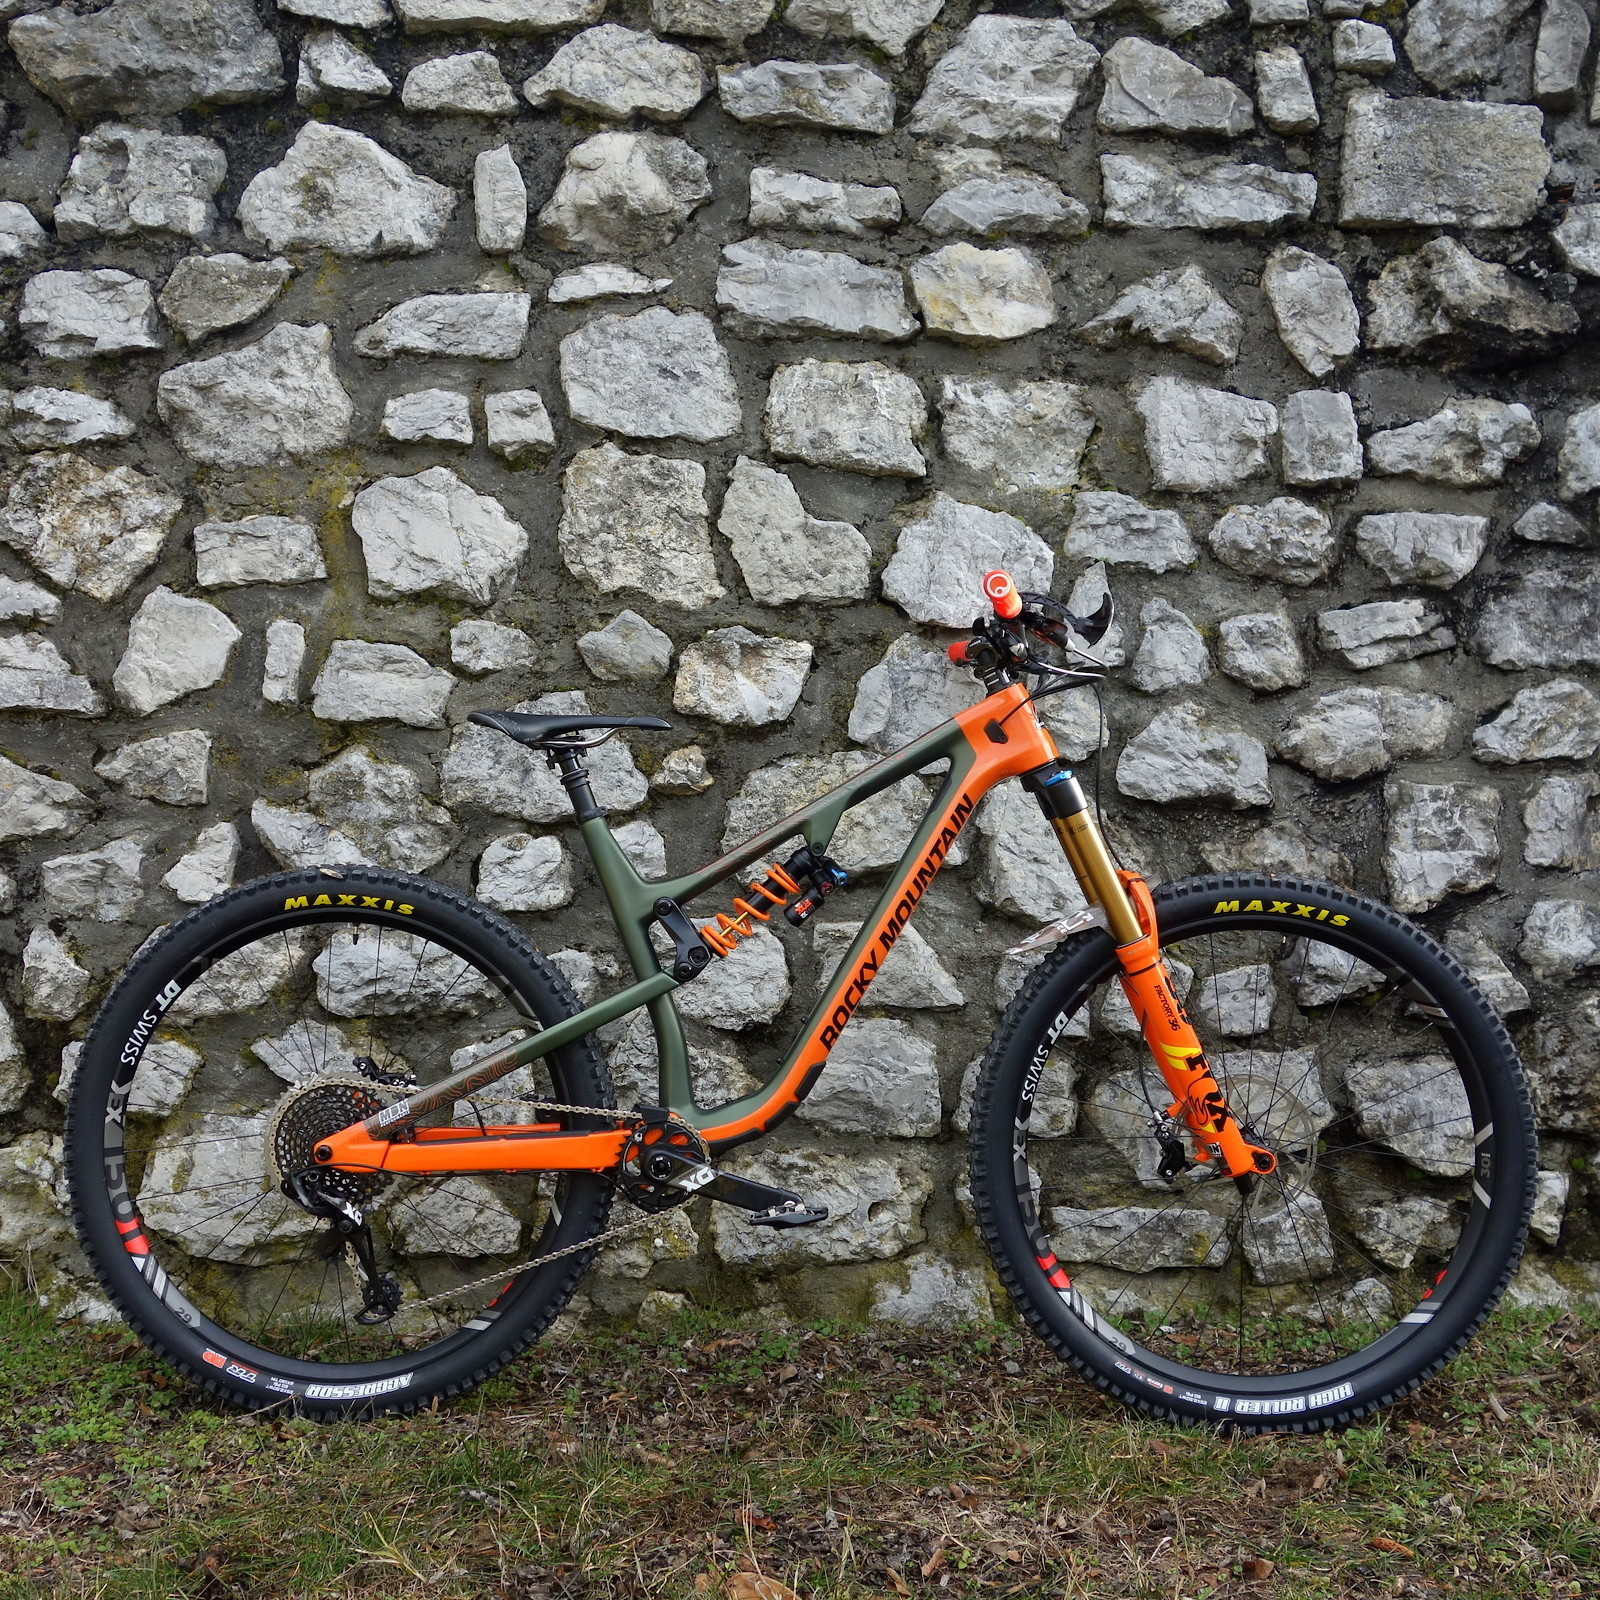 Rocky Mountain Instinct Carbon 90 BC - 2019 Vital Bike of the Day Collection - Mountain Biking Pictures - Vital MTB